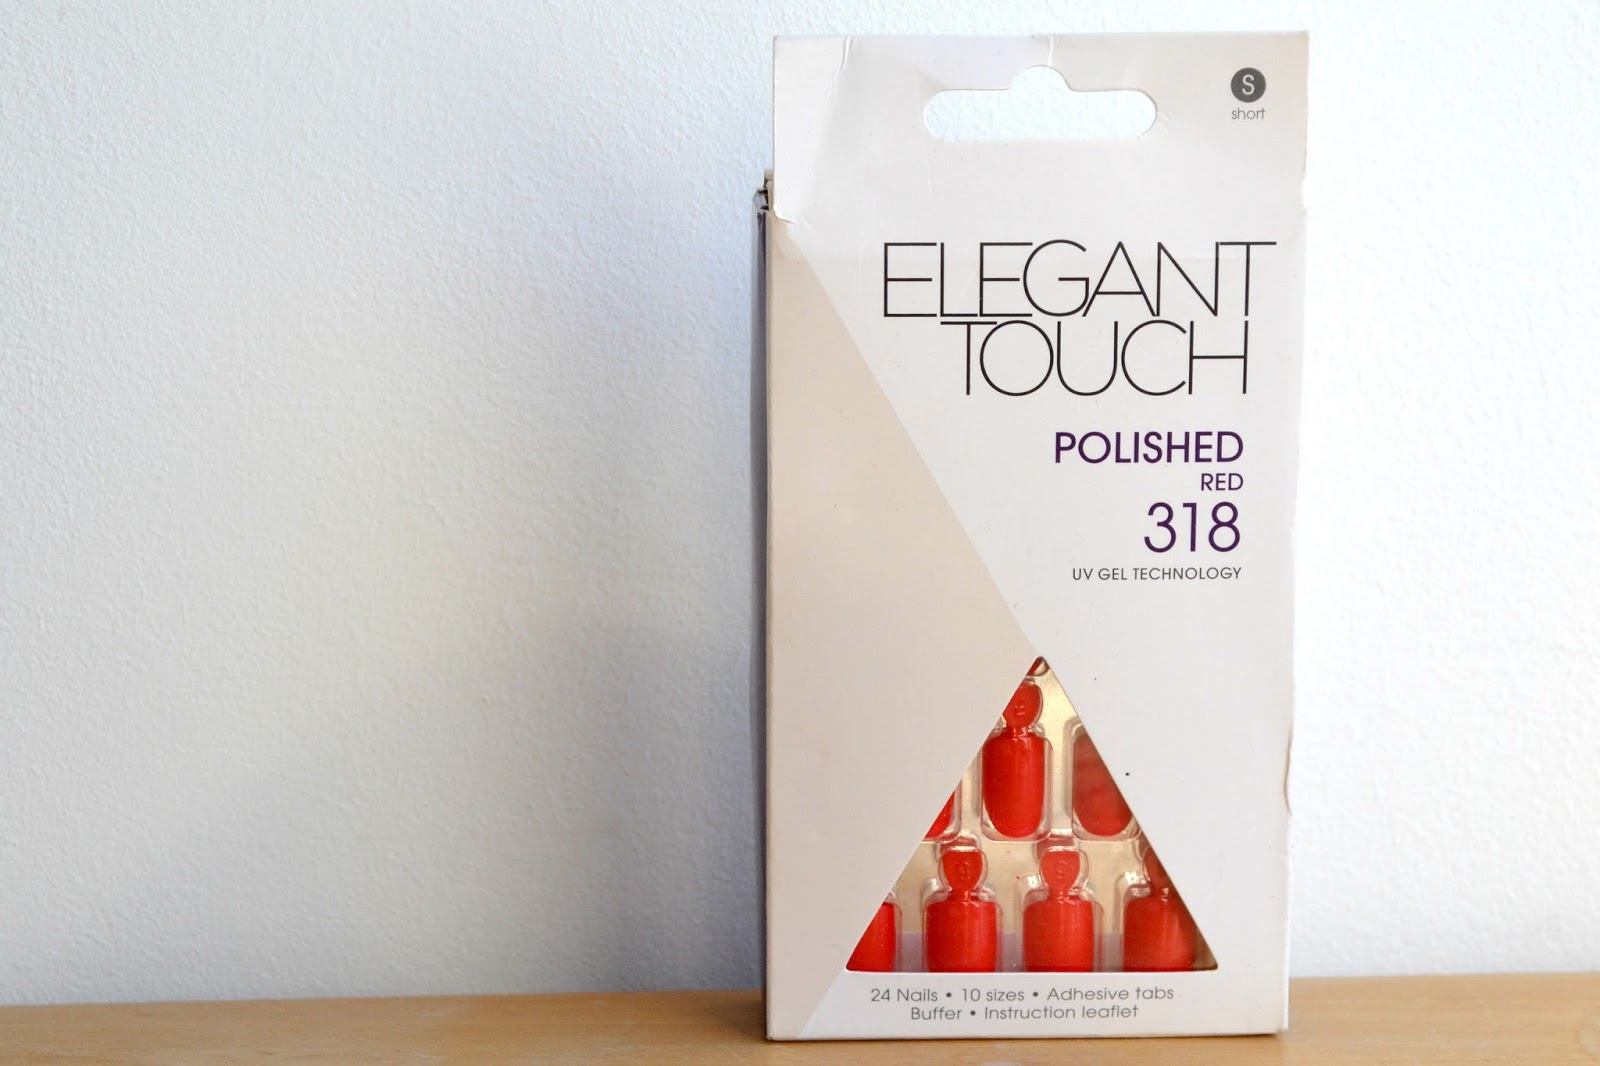 Elegant Touch Polished False Nails in Red box